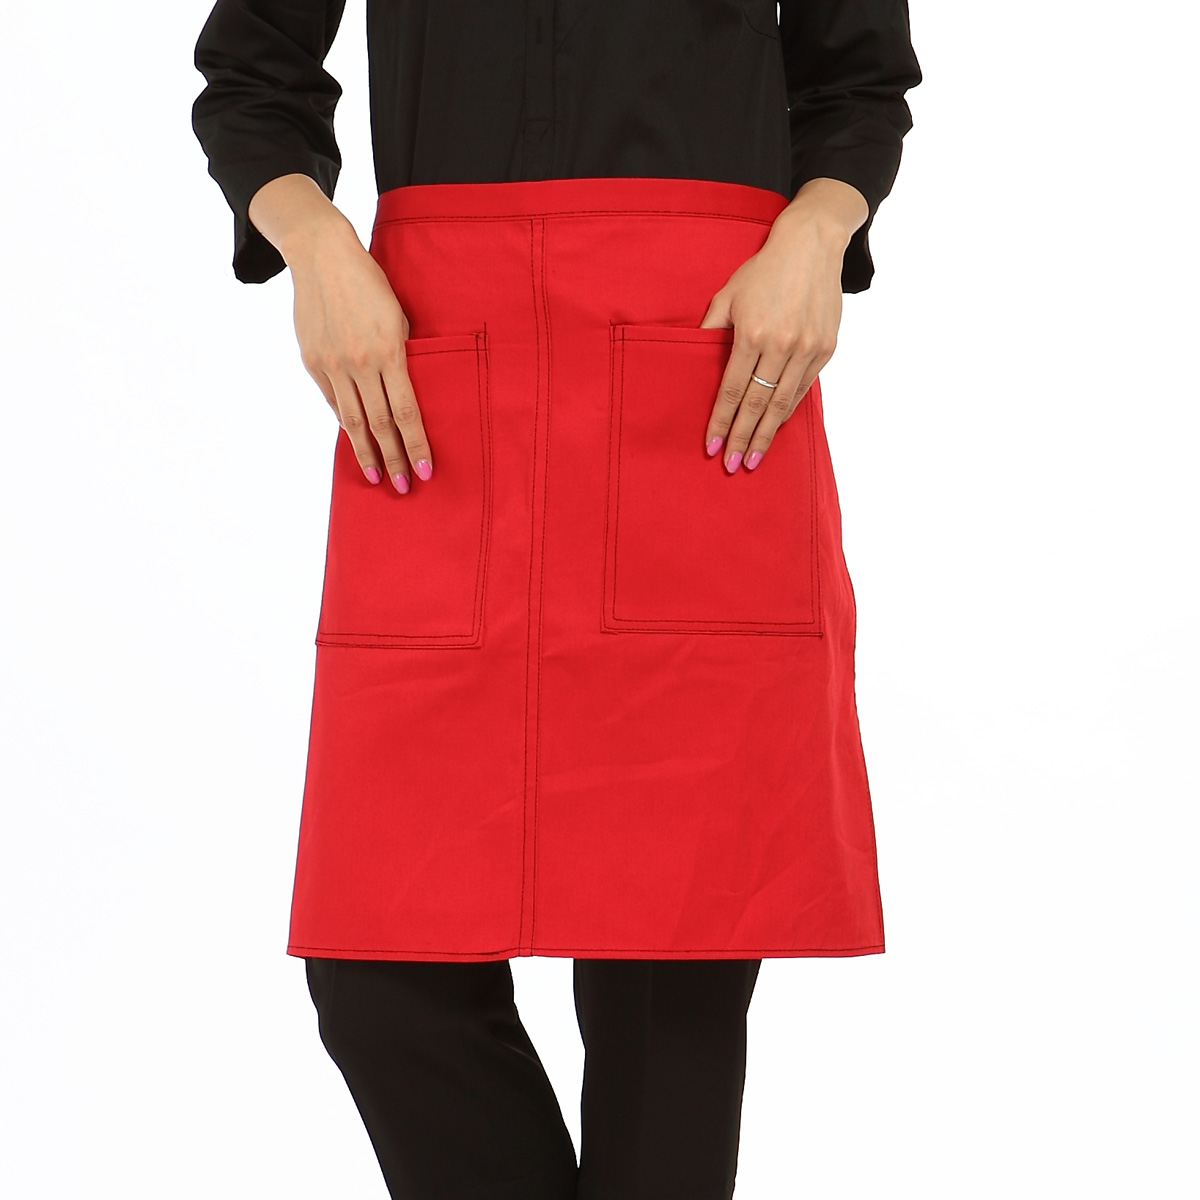 S06 fast food restaurant chef aprons chef aprons chef apron kitchen aprons hotel restaurant hotel